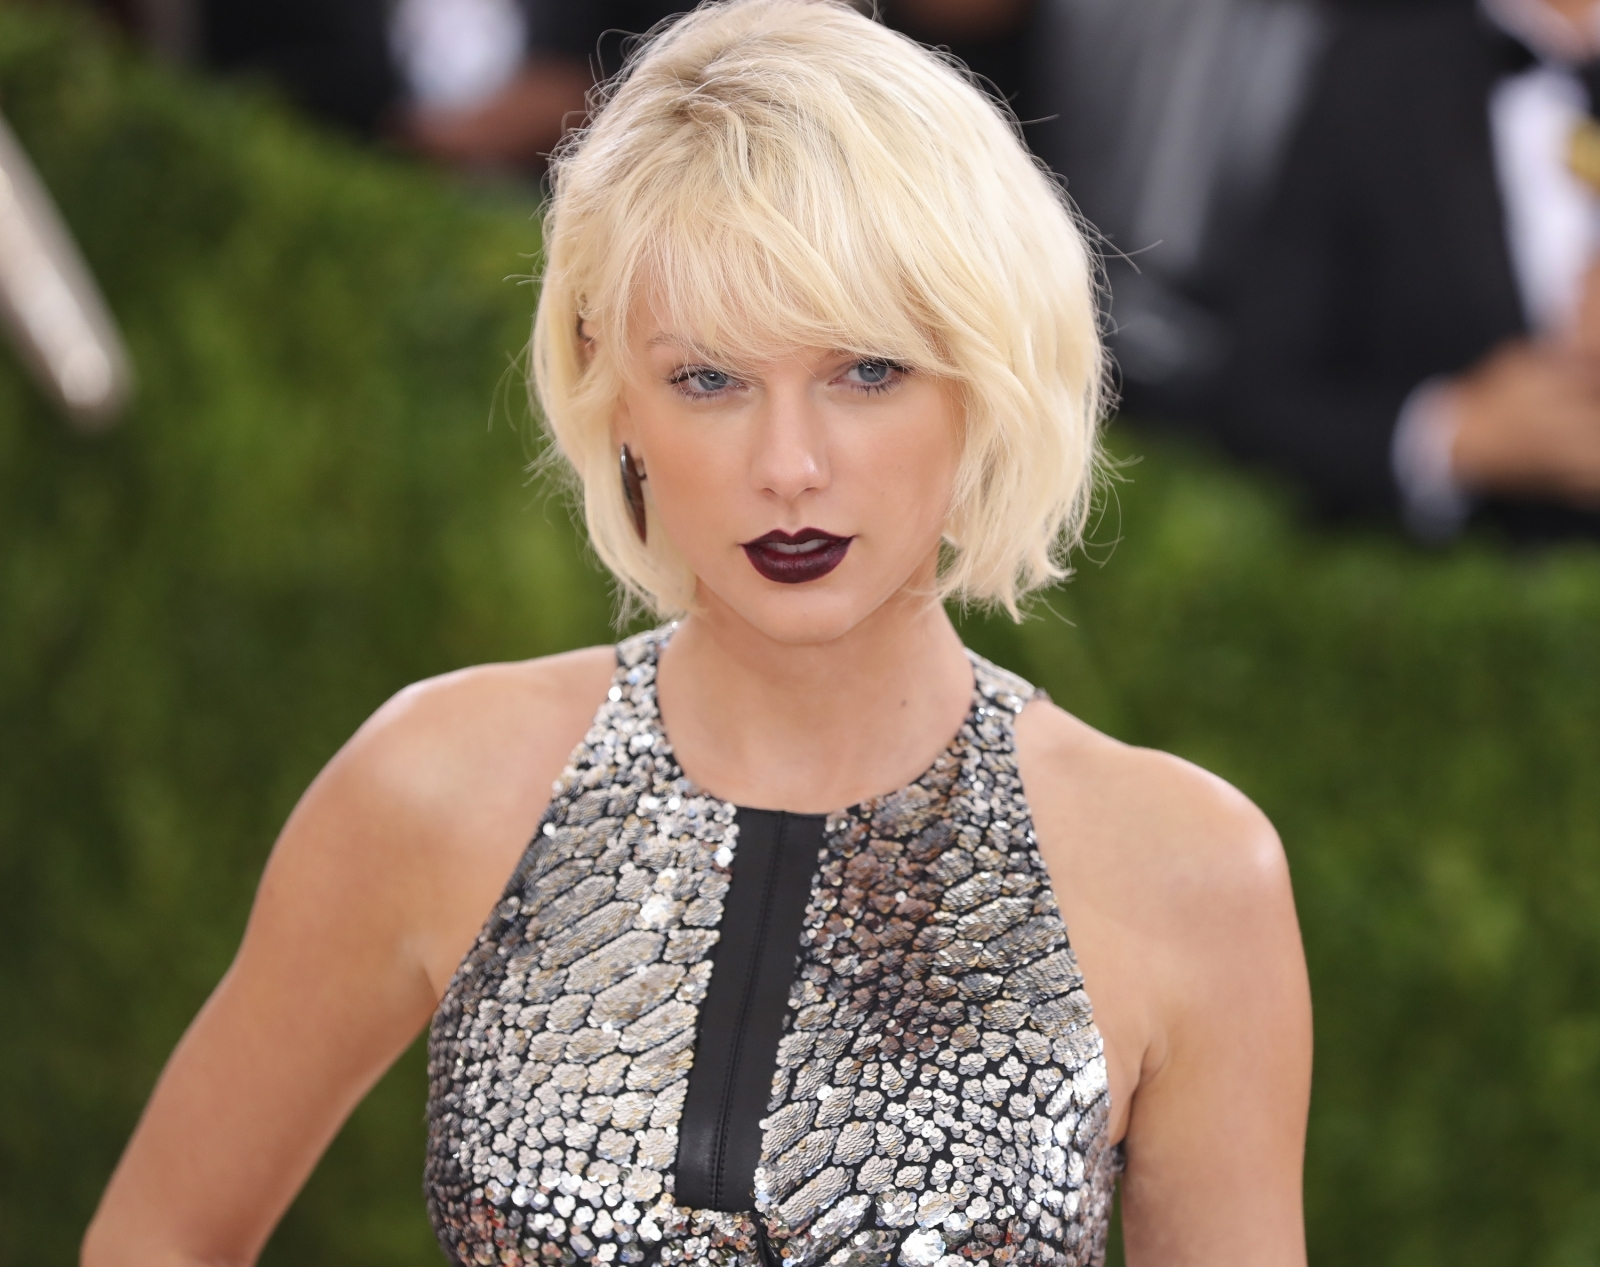 Taylor Swift 'looked visibly upset' after Denver DJ allegedly groped her bum